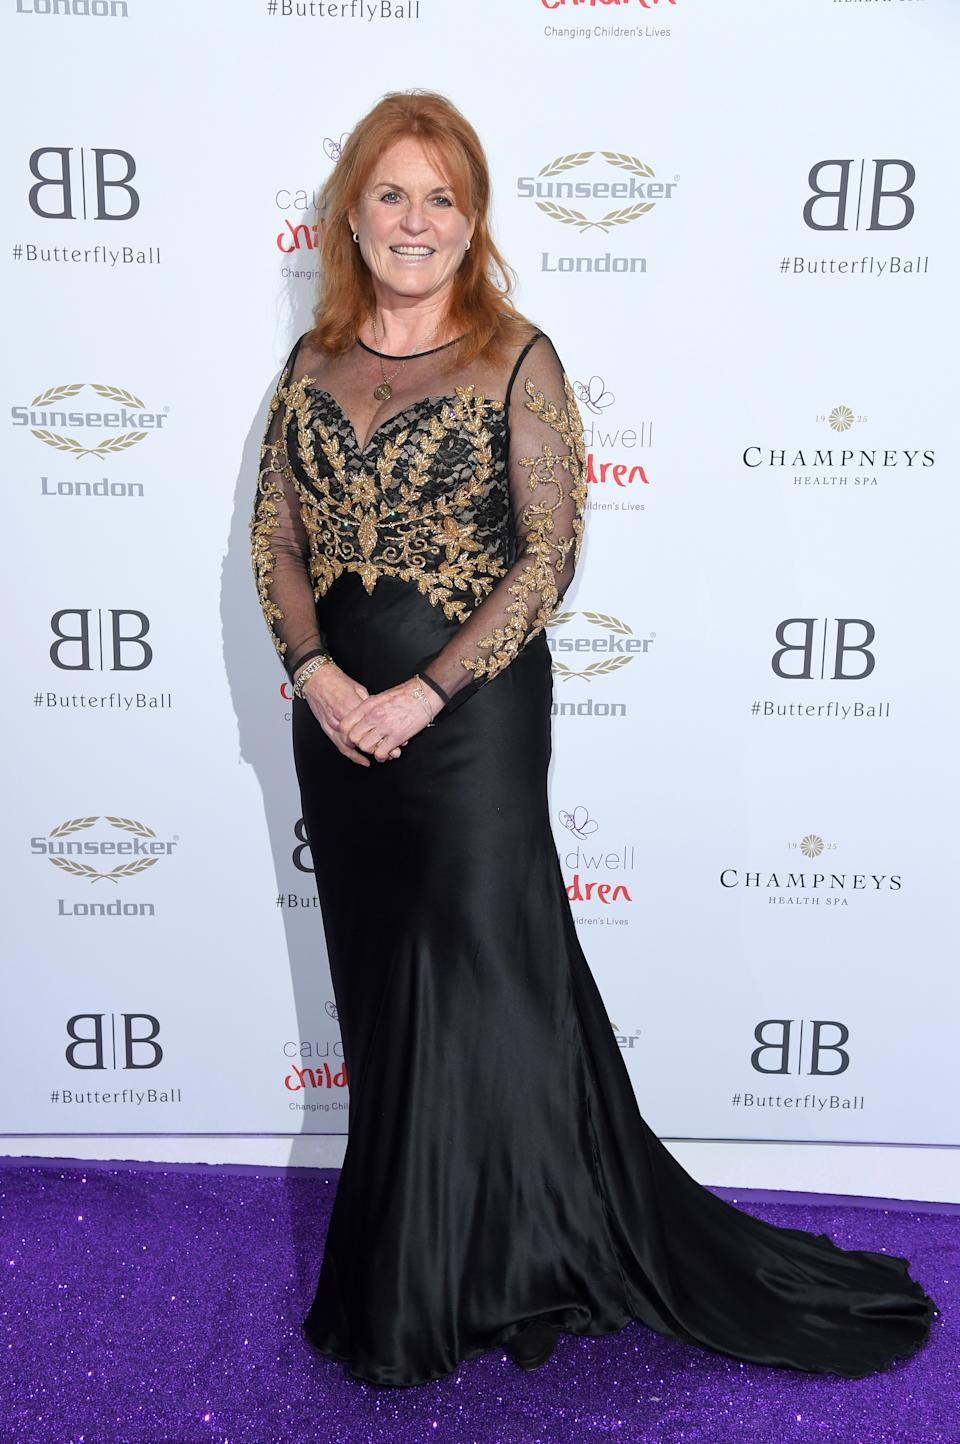 The Butterfly Ball 2019, Sarah Ferguson arrived in a sheer gown